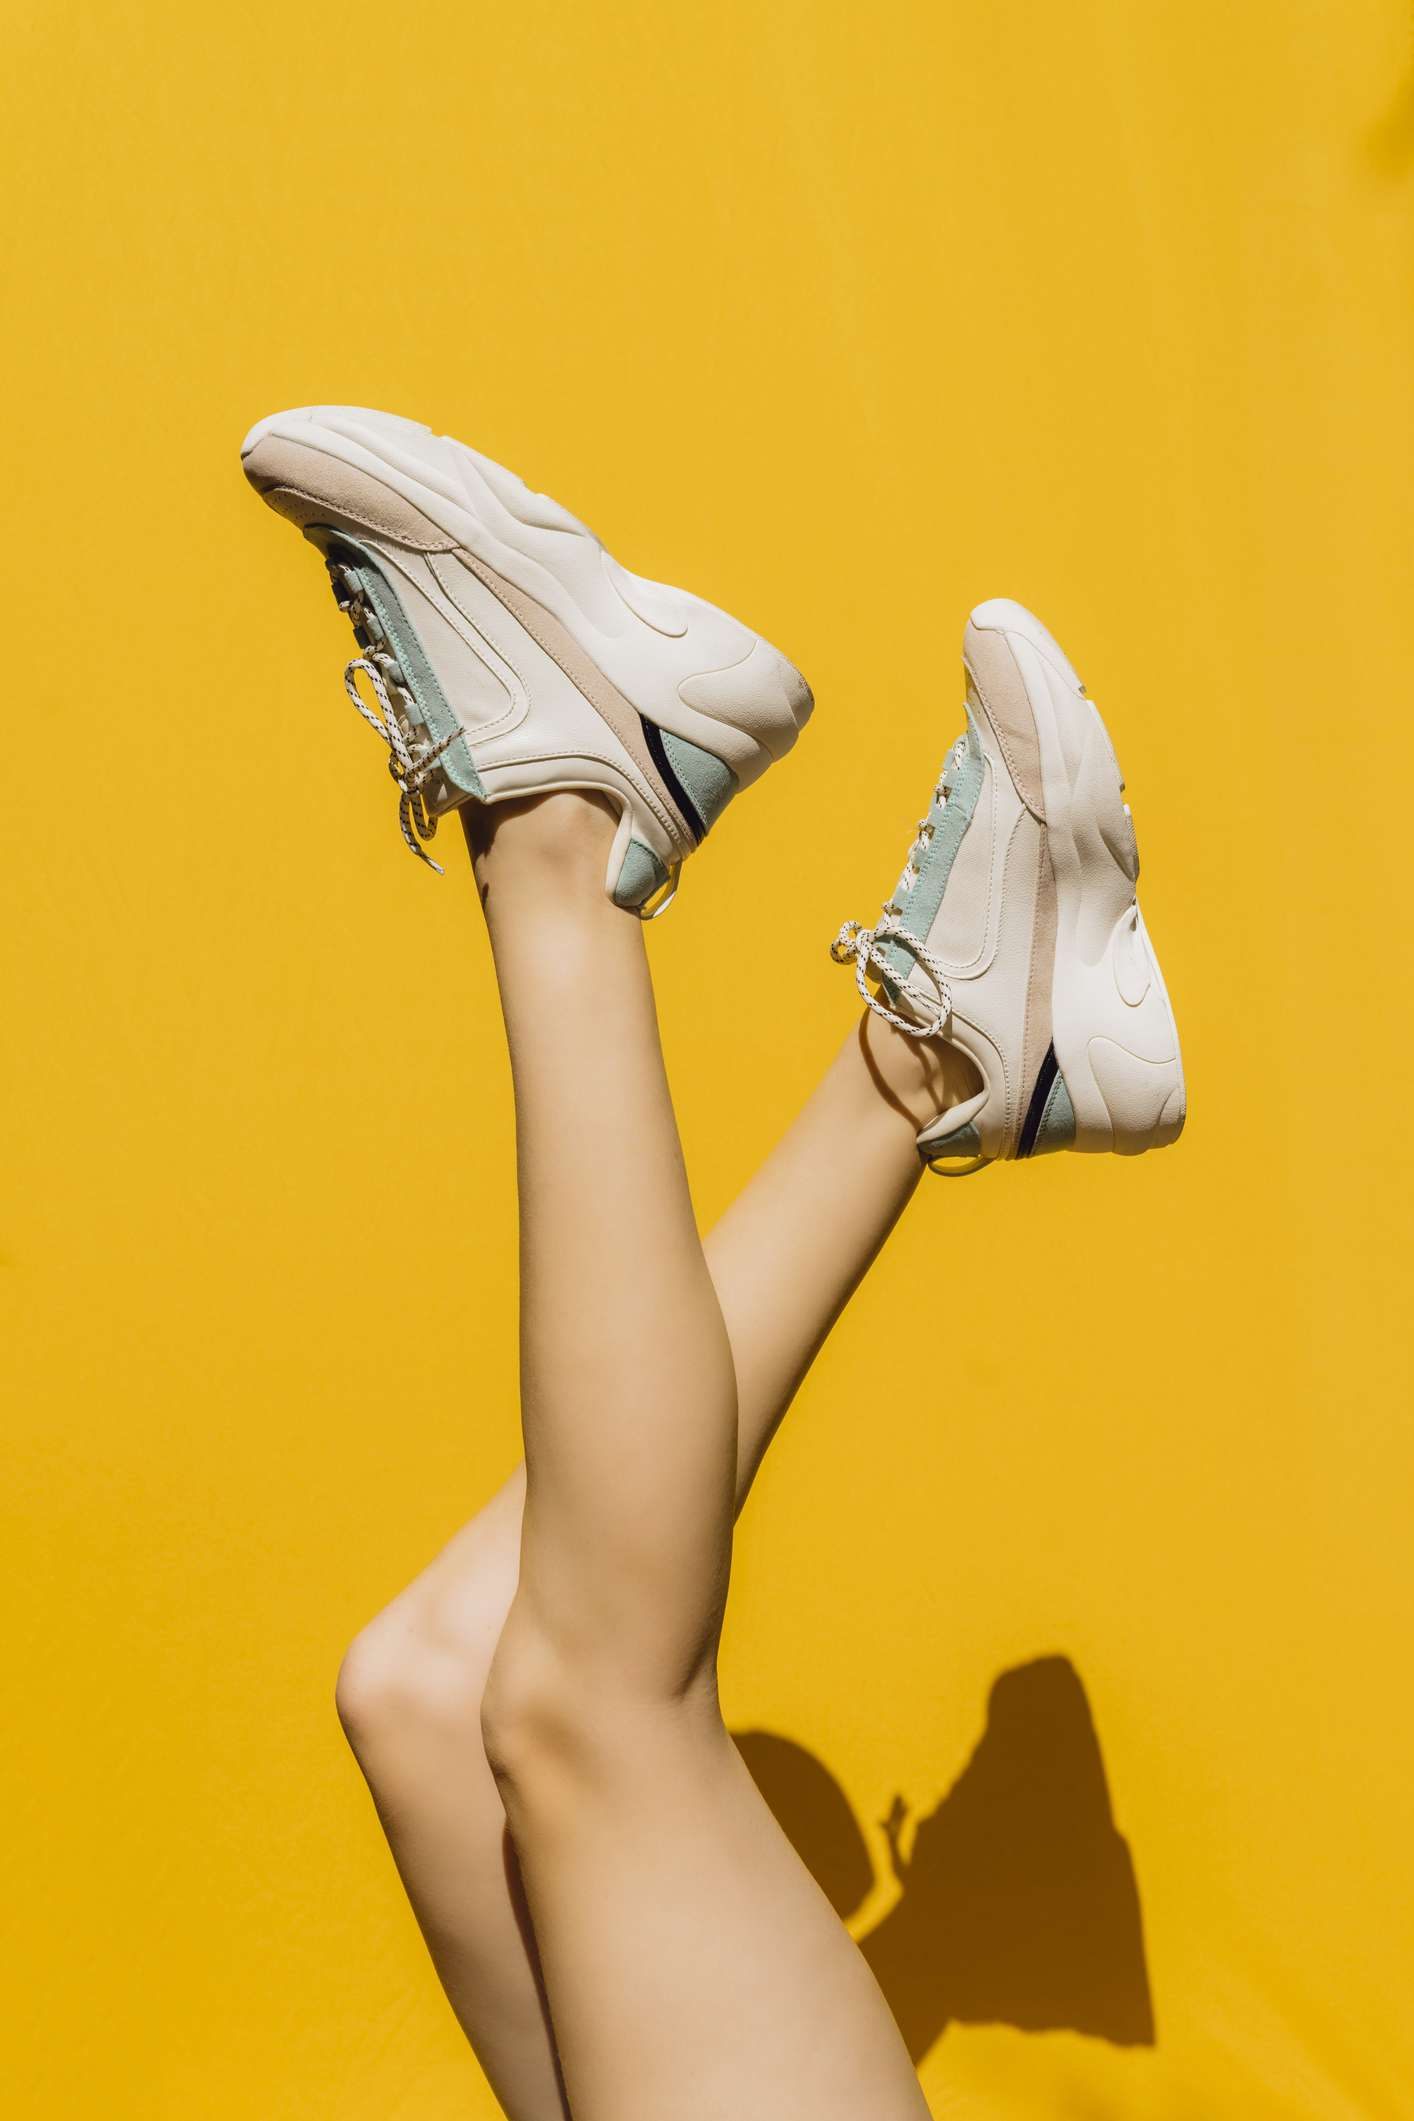 woman wearing sneakers against yellow background